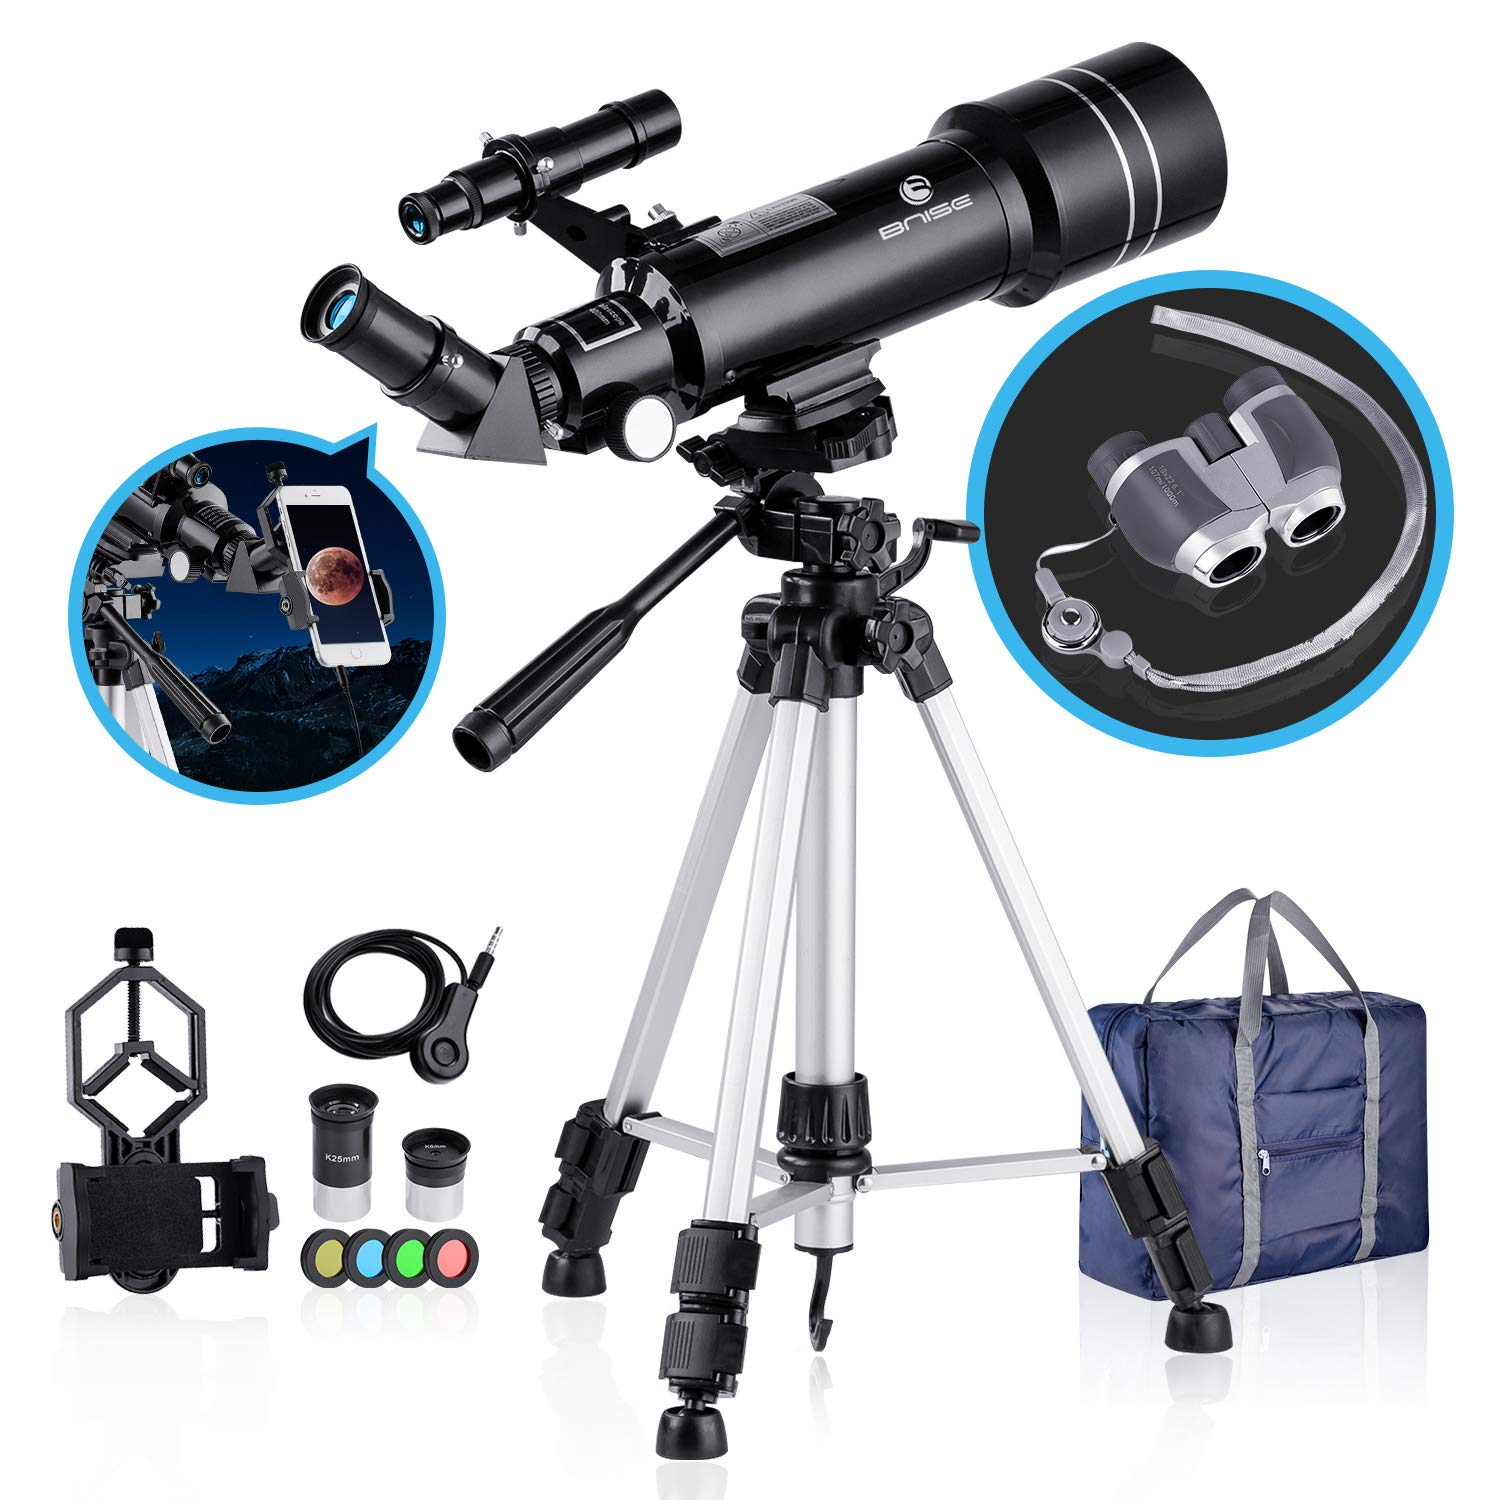 BNISE 70mm Portable Refractor Telescope & HD Binoculars, Fully Coated Glass Optics, Ideal Telescope for Kids Beginners, with Adjustable Tripod Smartphone Adapter Moon Filter and Carry Bag by BNISE